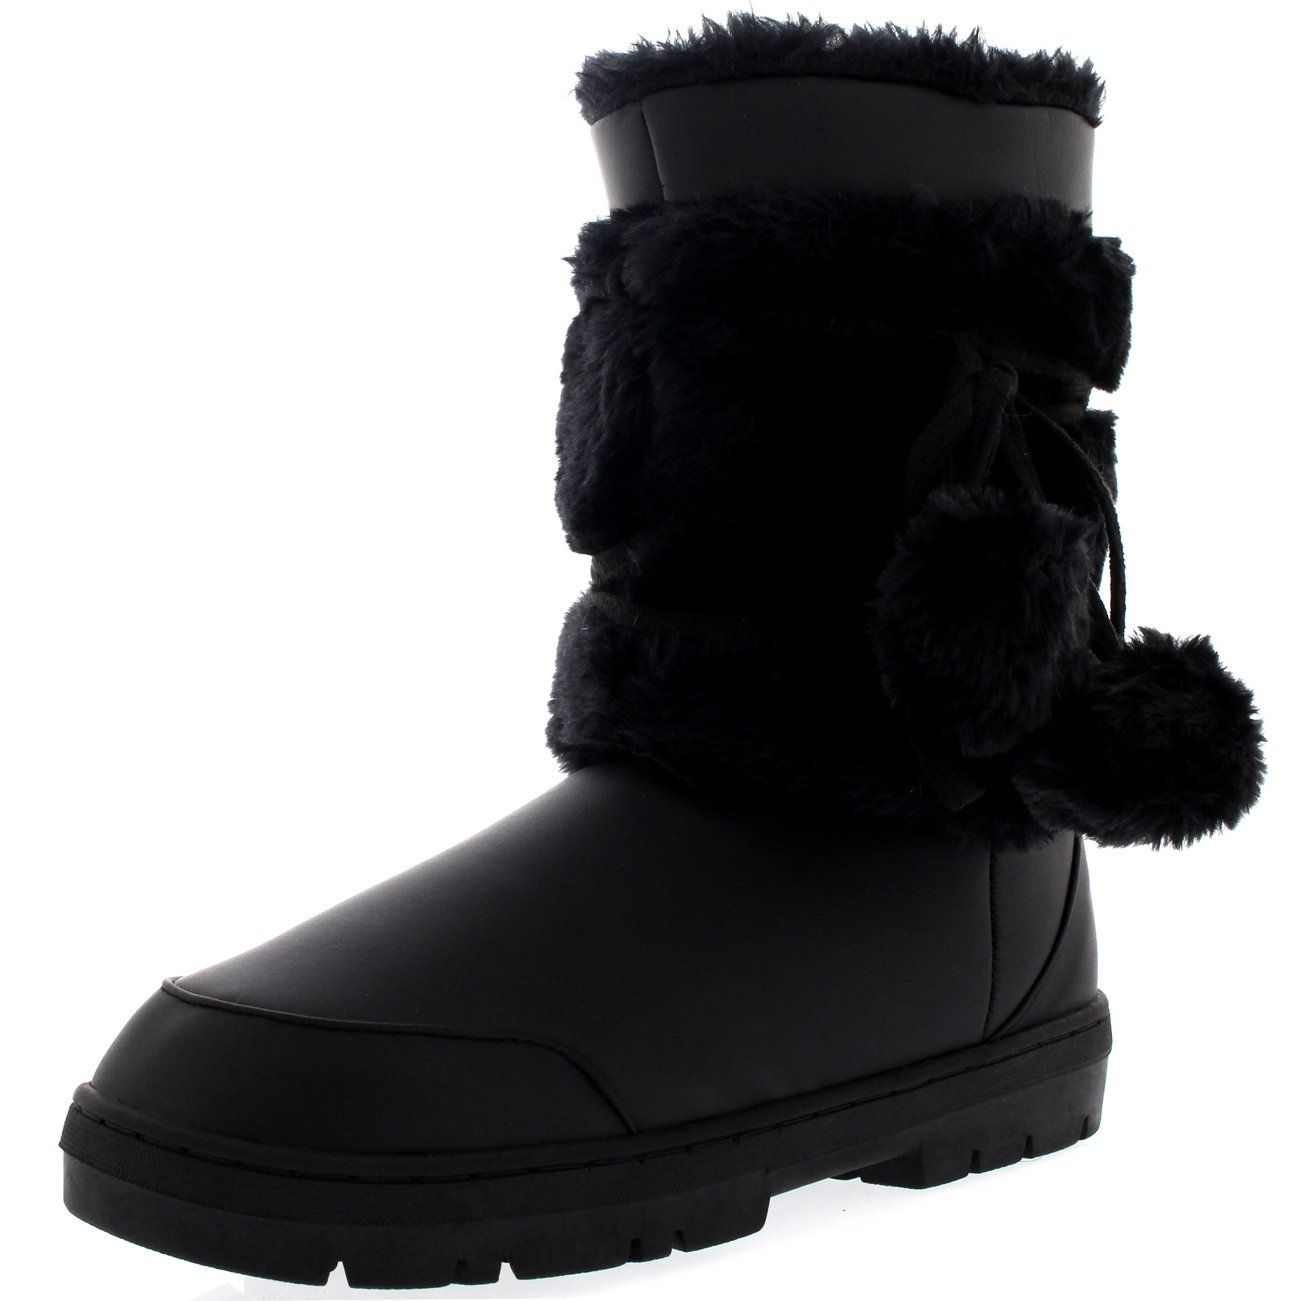 Womens Pom Pom Fully Fur Lined Waterproof Winter Snow Boots, Size ...